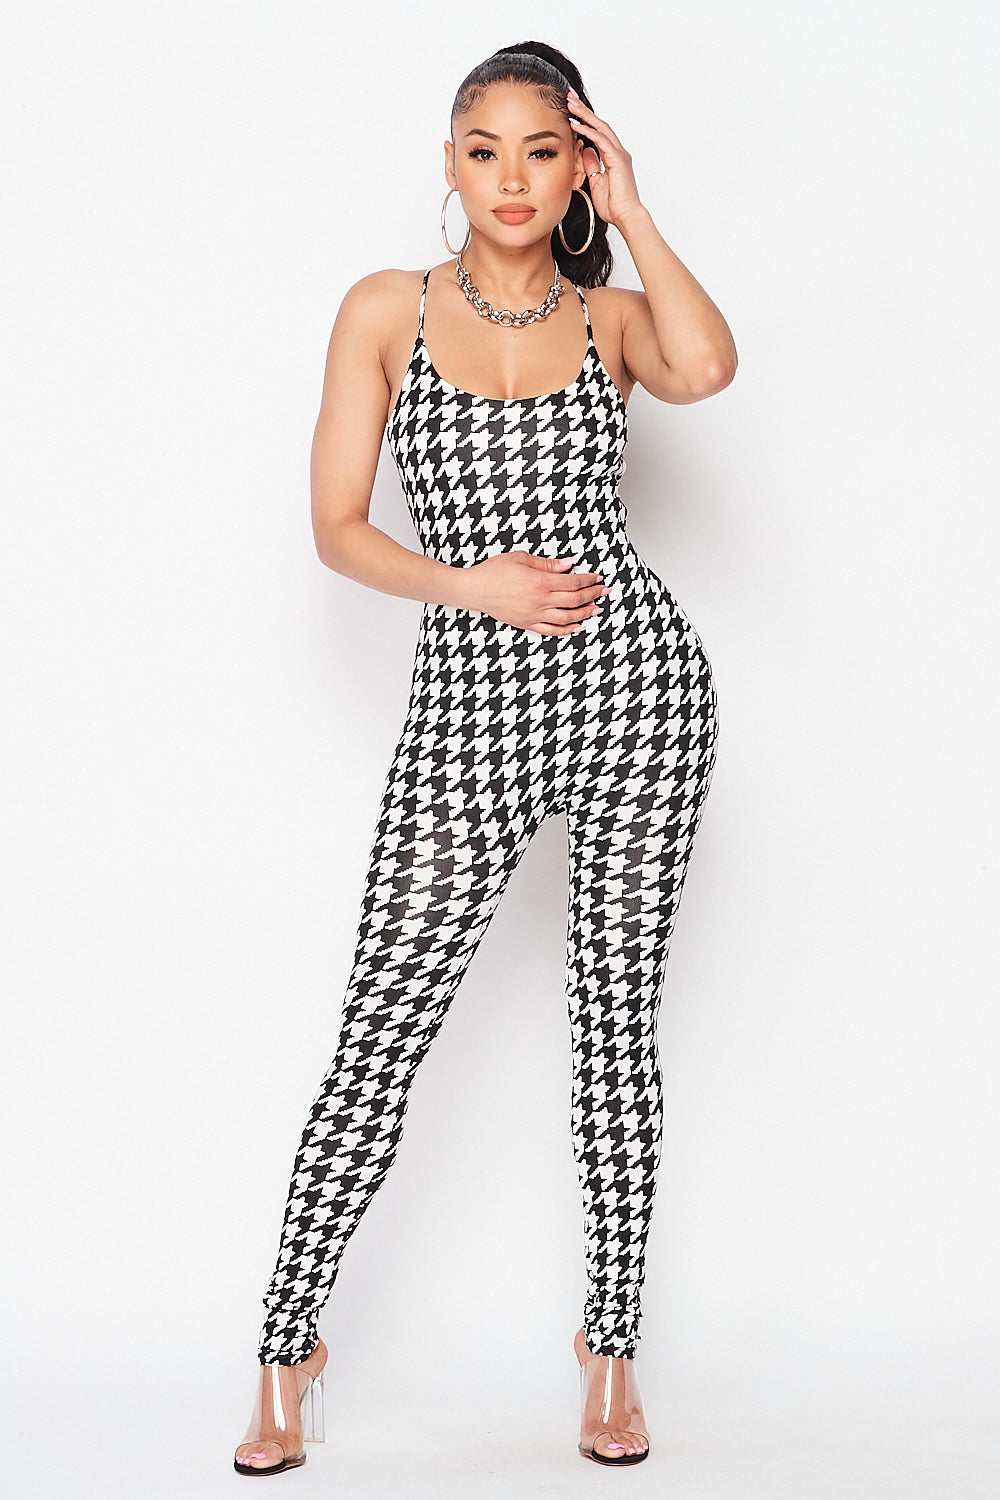 Houndstooth Spaghetti Strap Jumpsuit with Open Back Detail - Fashion House USA